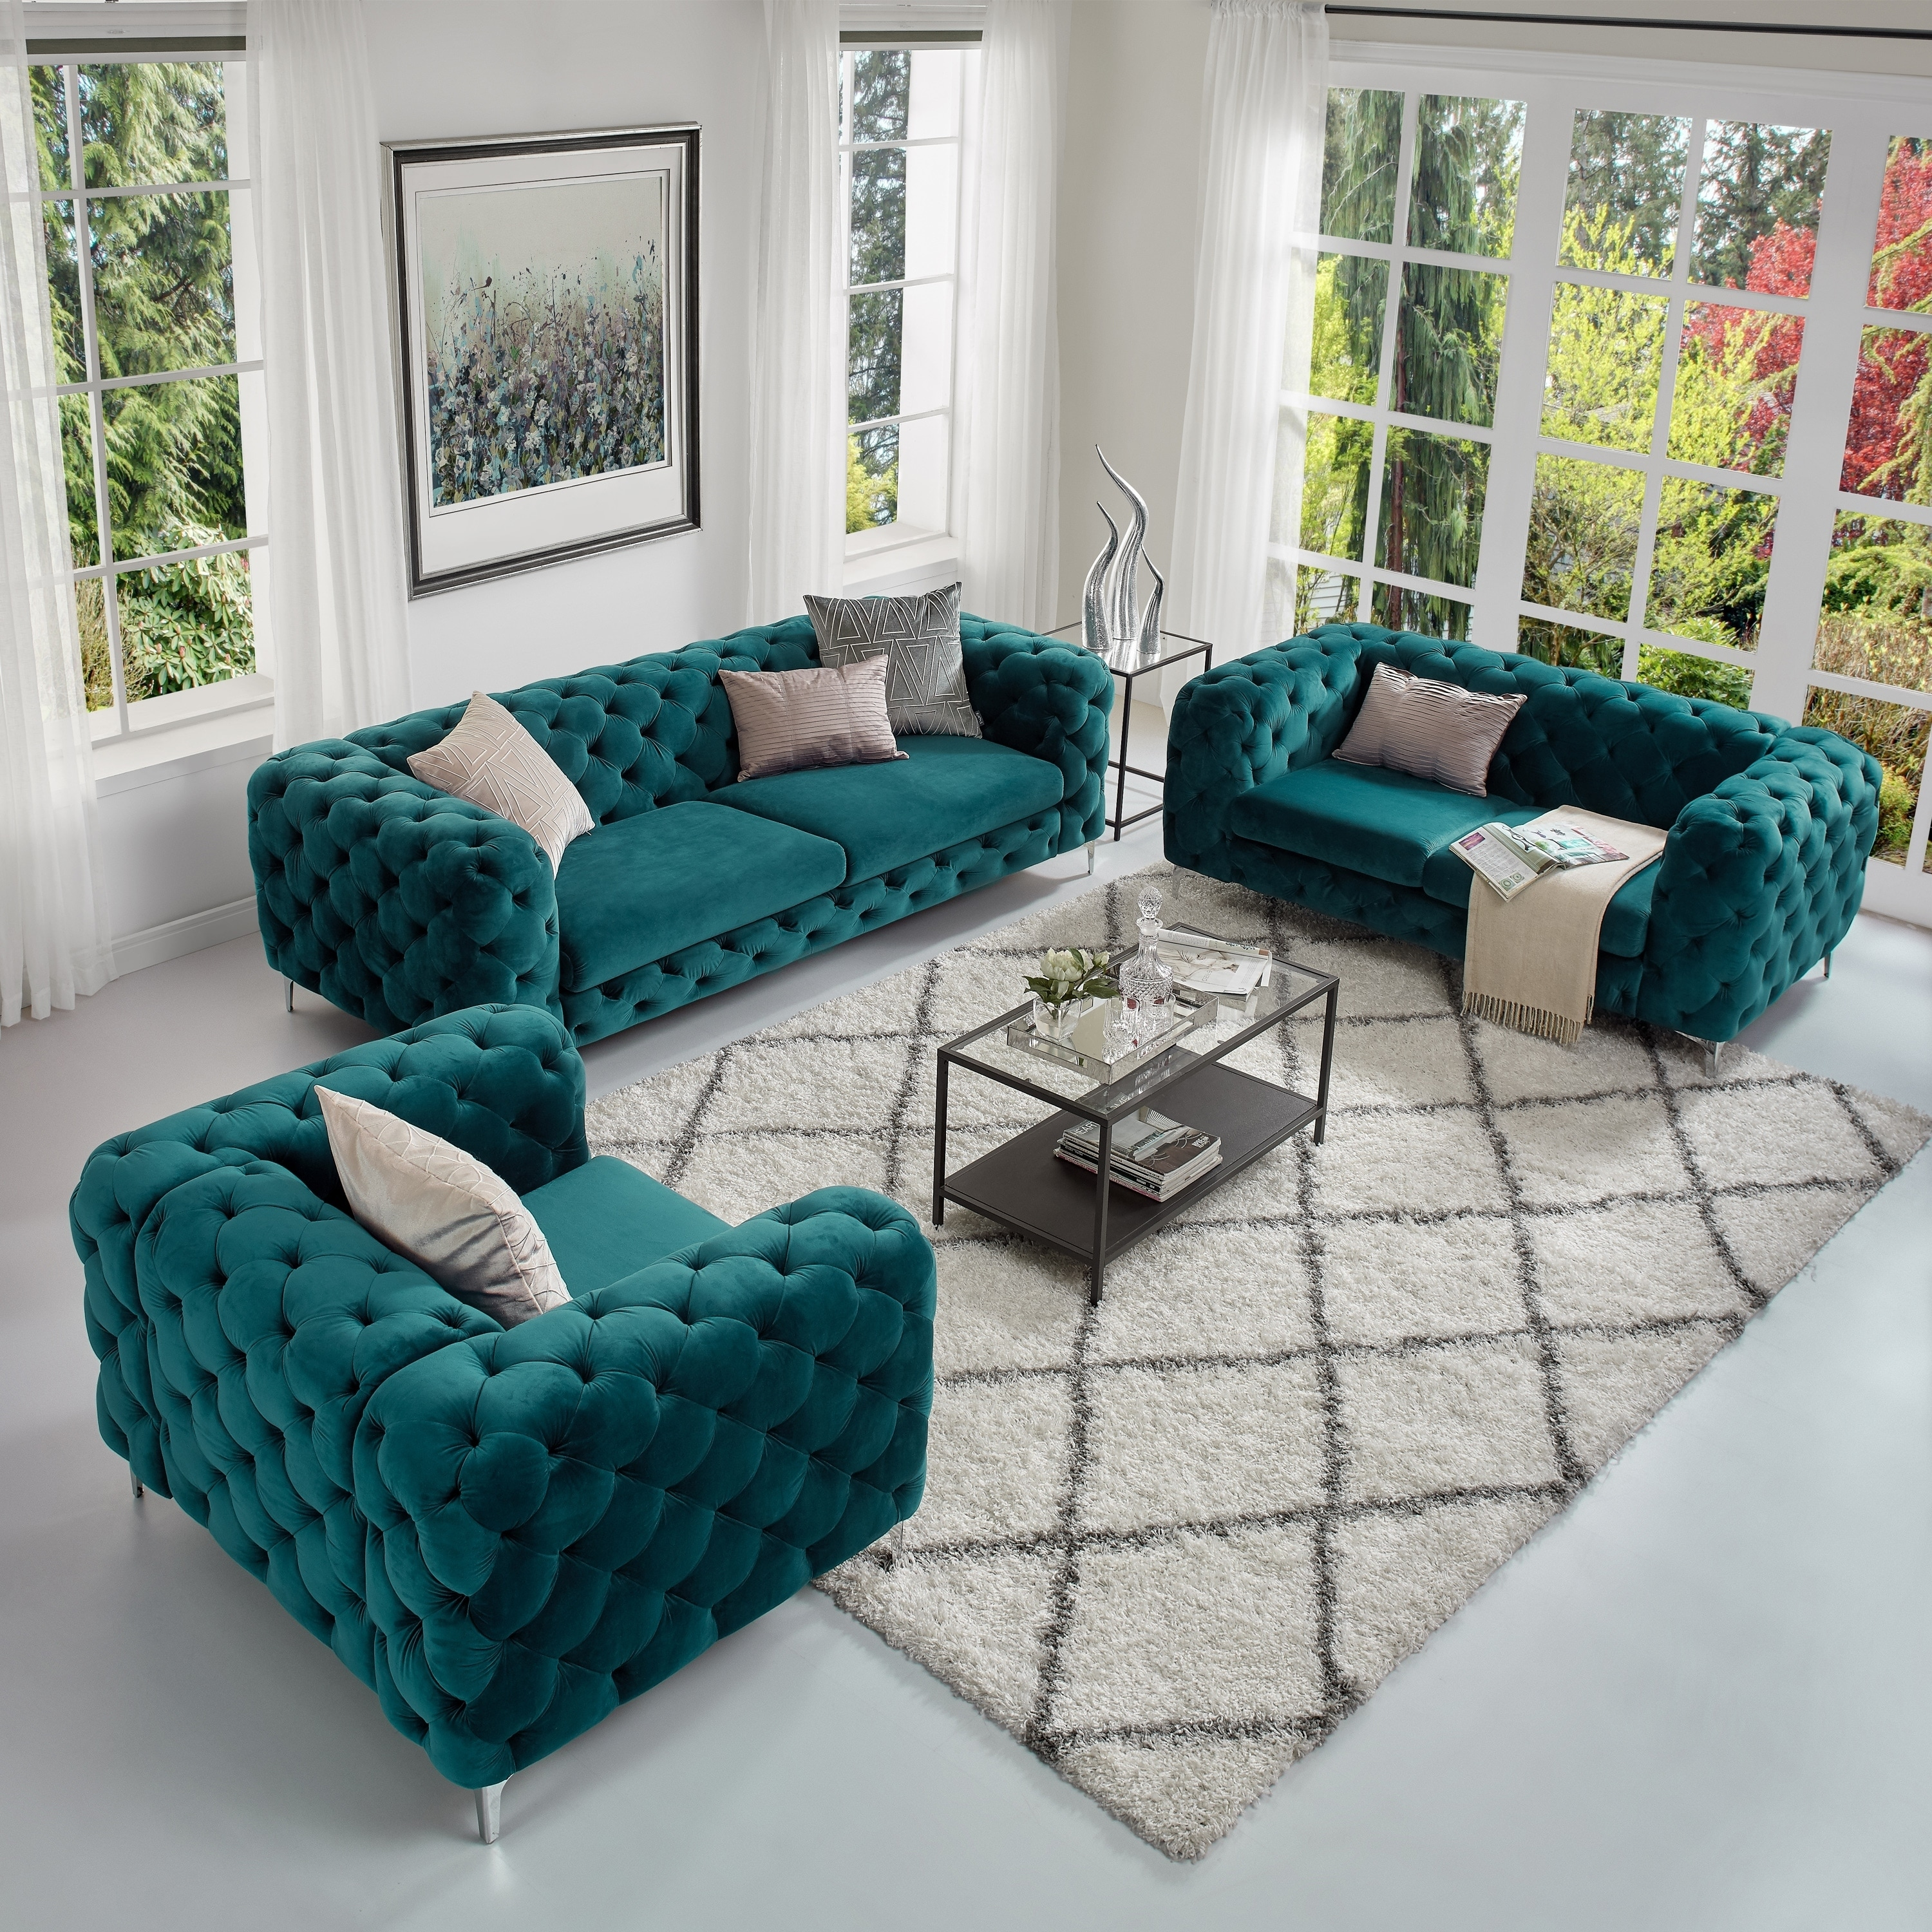 Corvus Aosta Tufted Velvet Loveseat